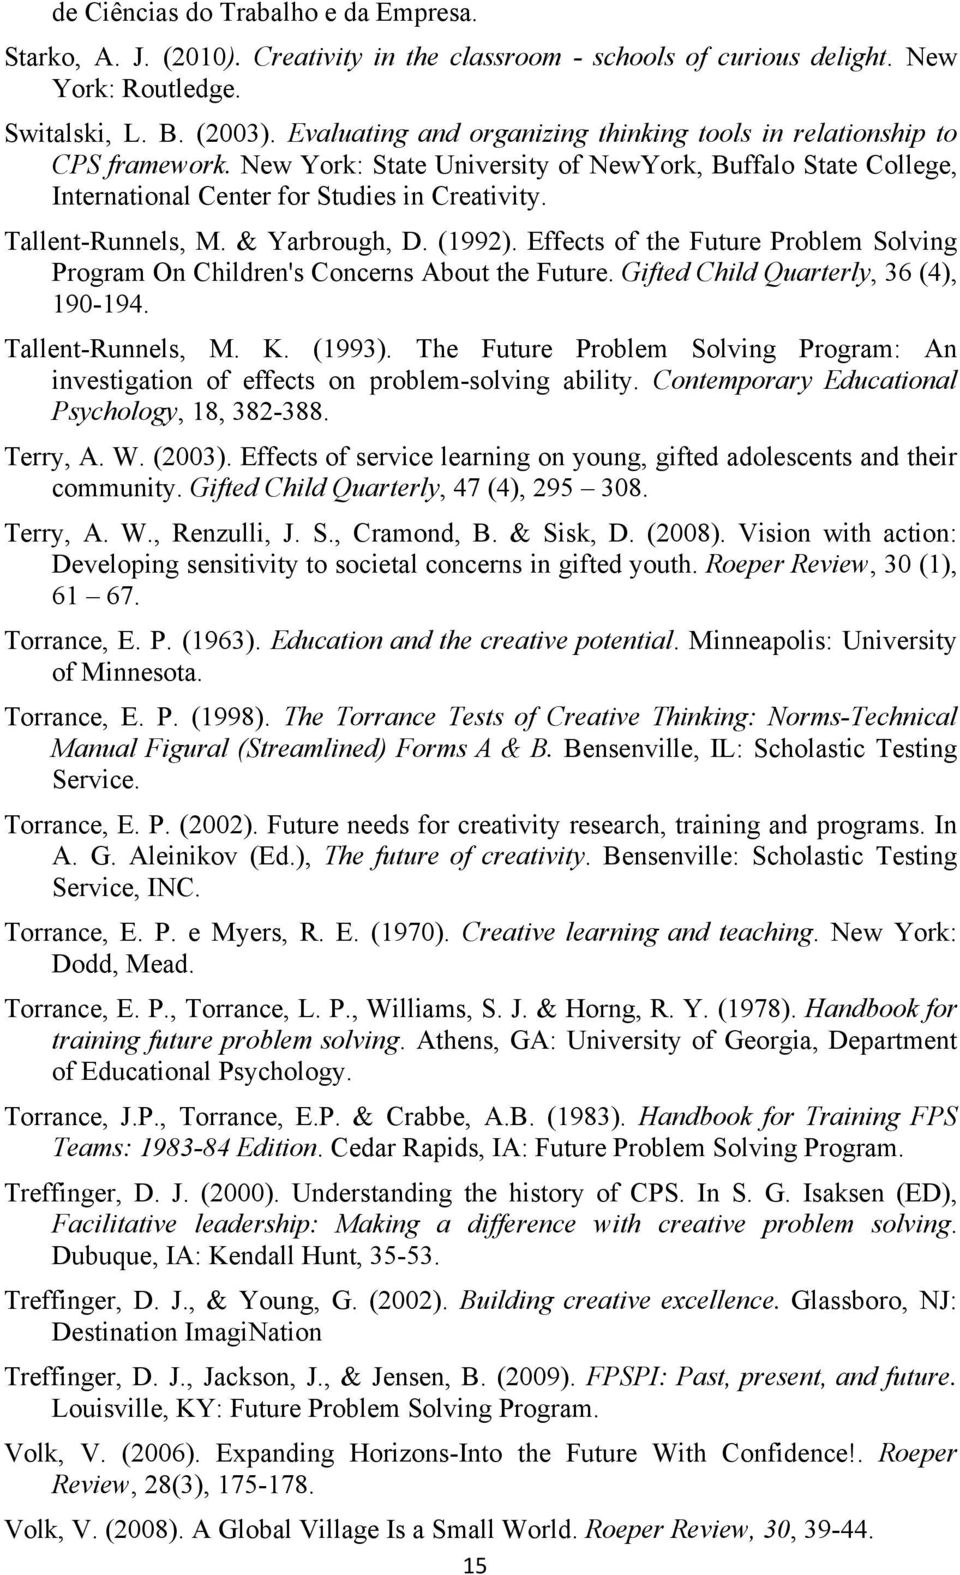 Tallent-Runnels, M. & Yarbrough, D. (1992). Effects of the Future Problem Solving Program On Children's Concerns About the Future. Gifted Child Quarterly, 36 (4), 190-194. Tallent-Runnels, M. K.